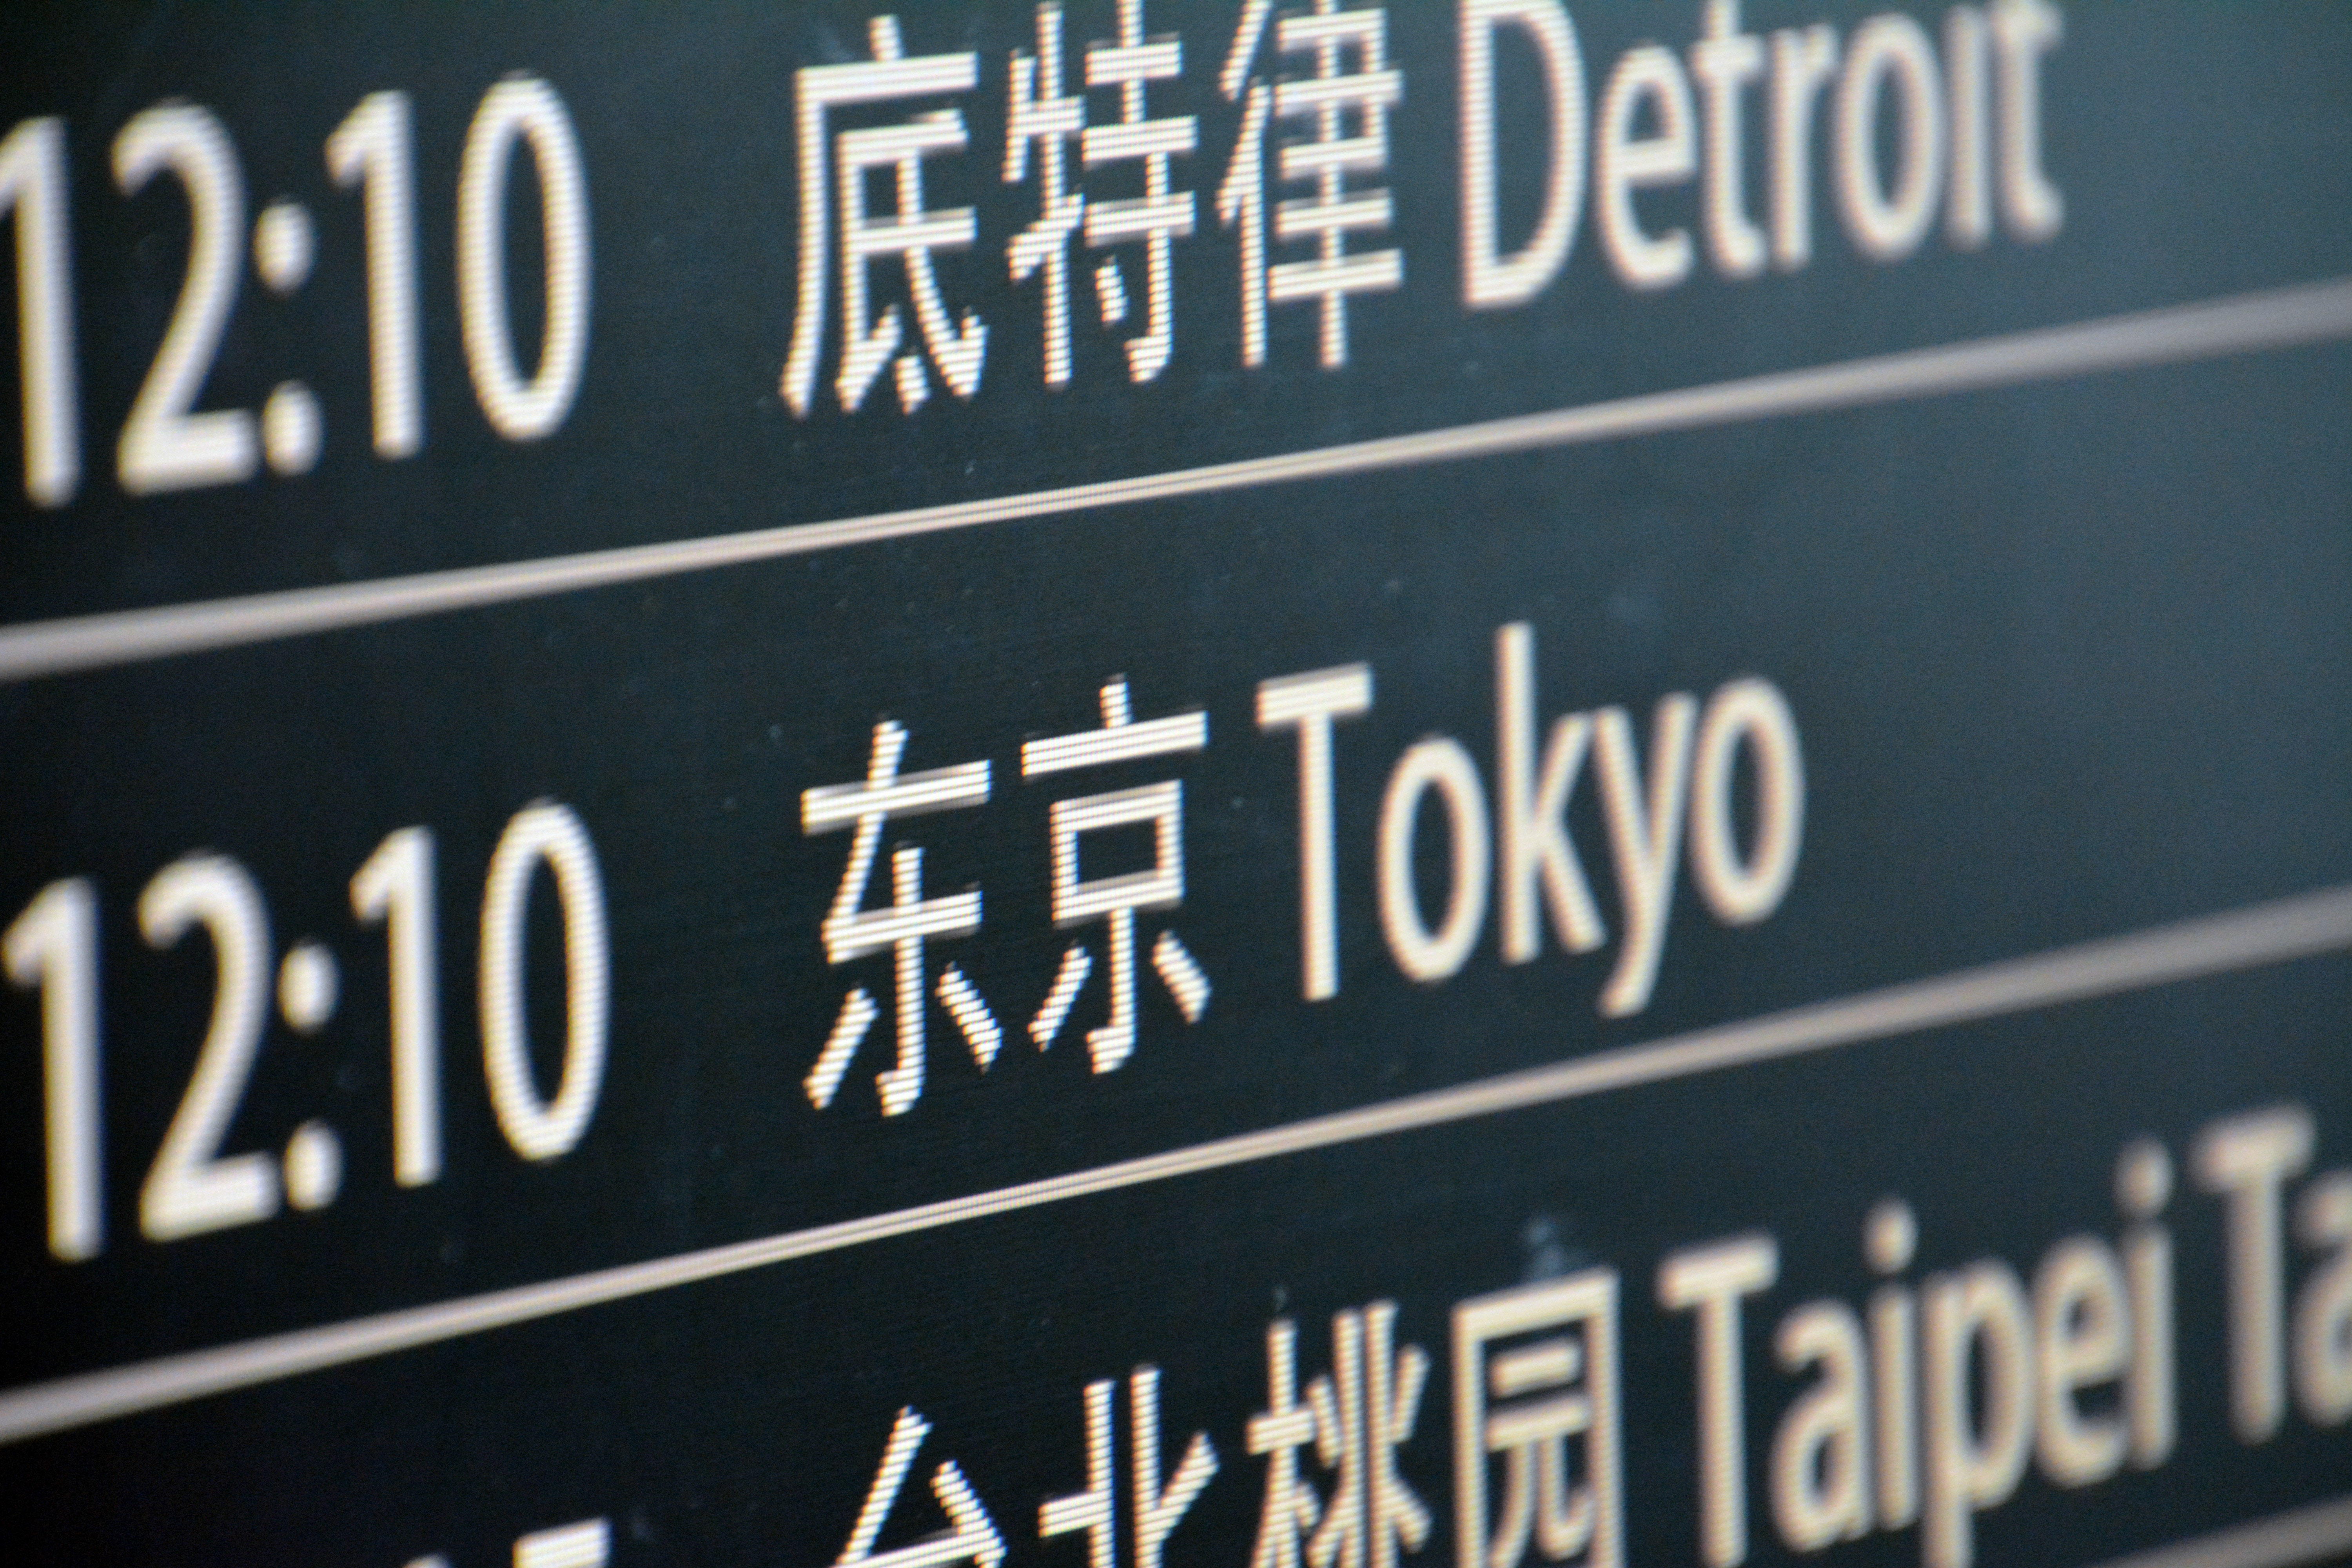 Picture of departure information in foreign language. Sell translation services online.